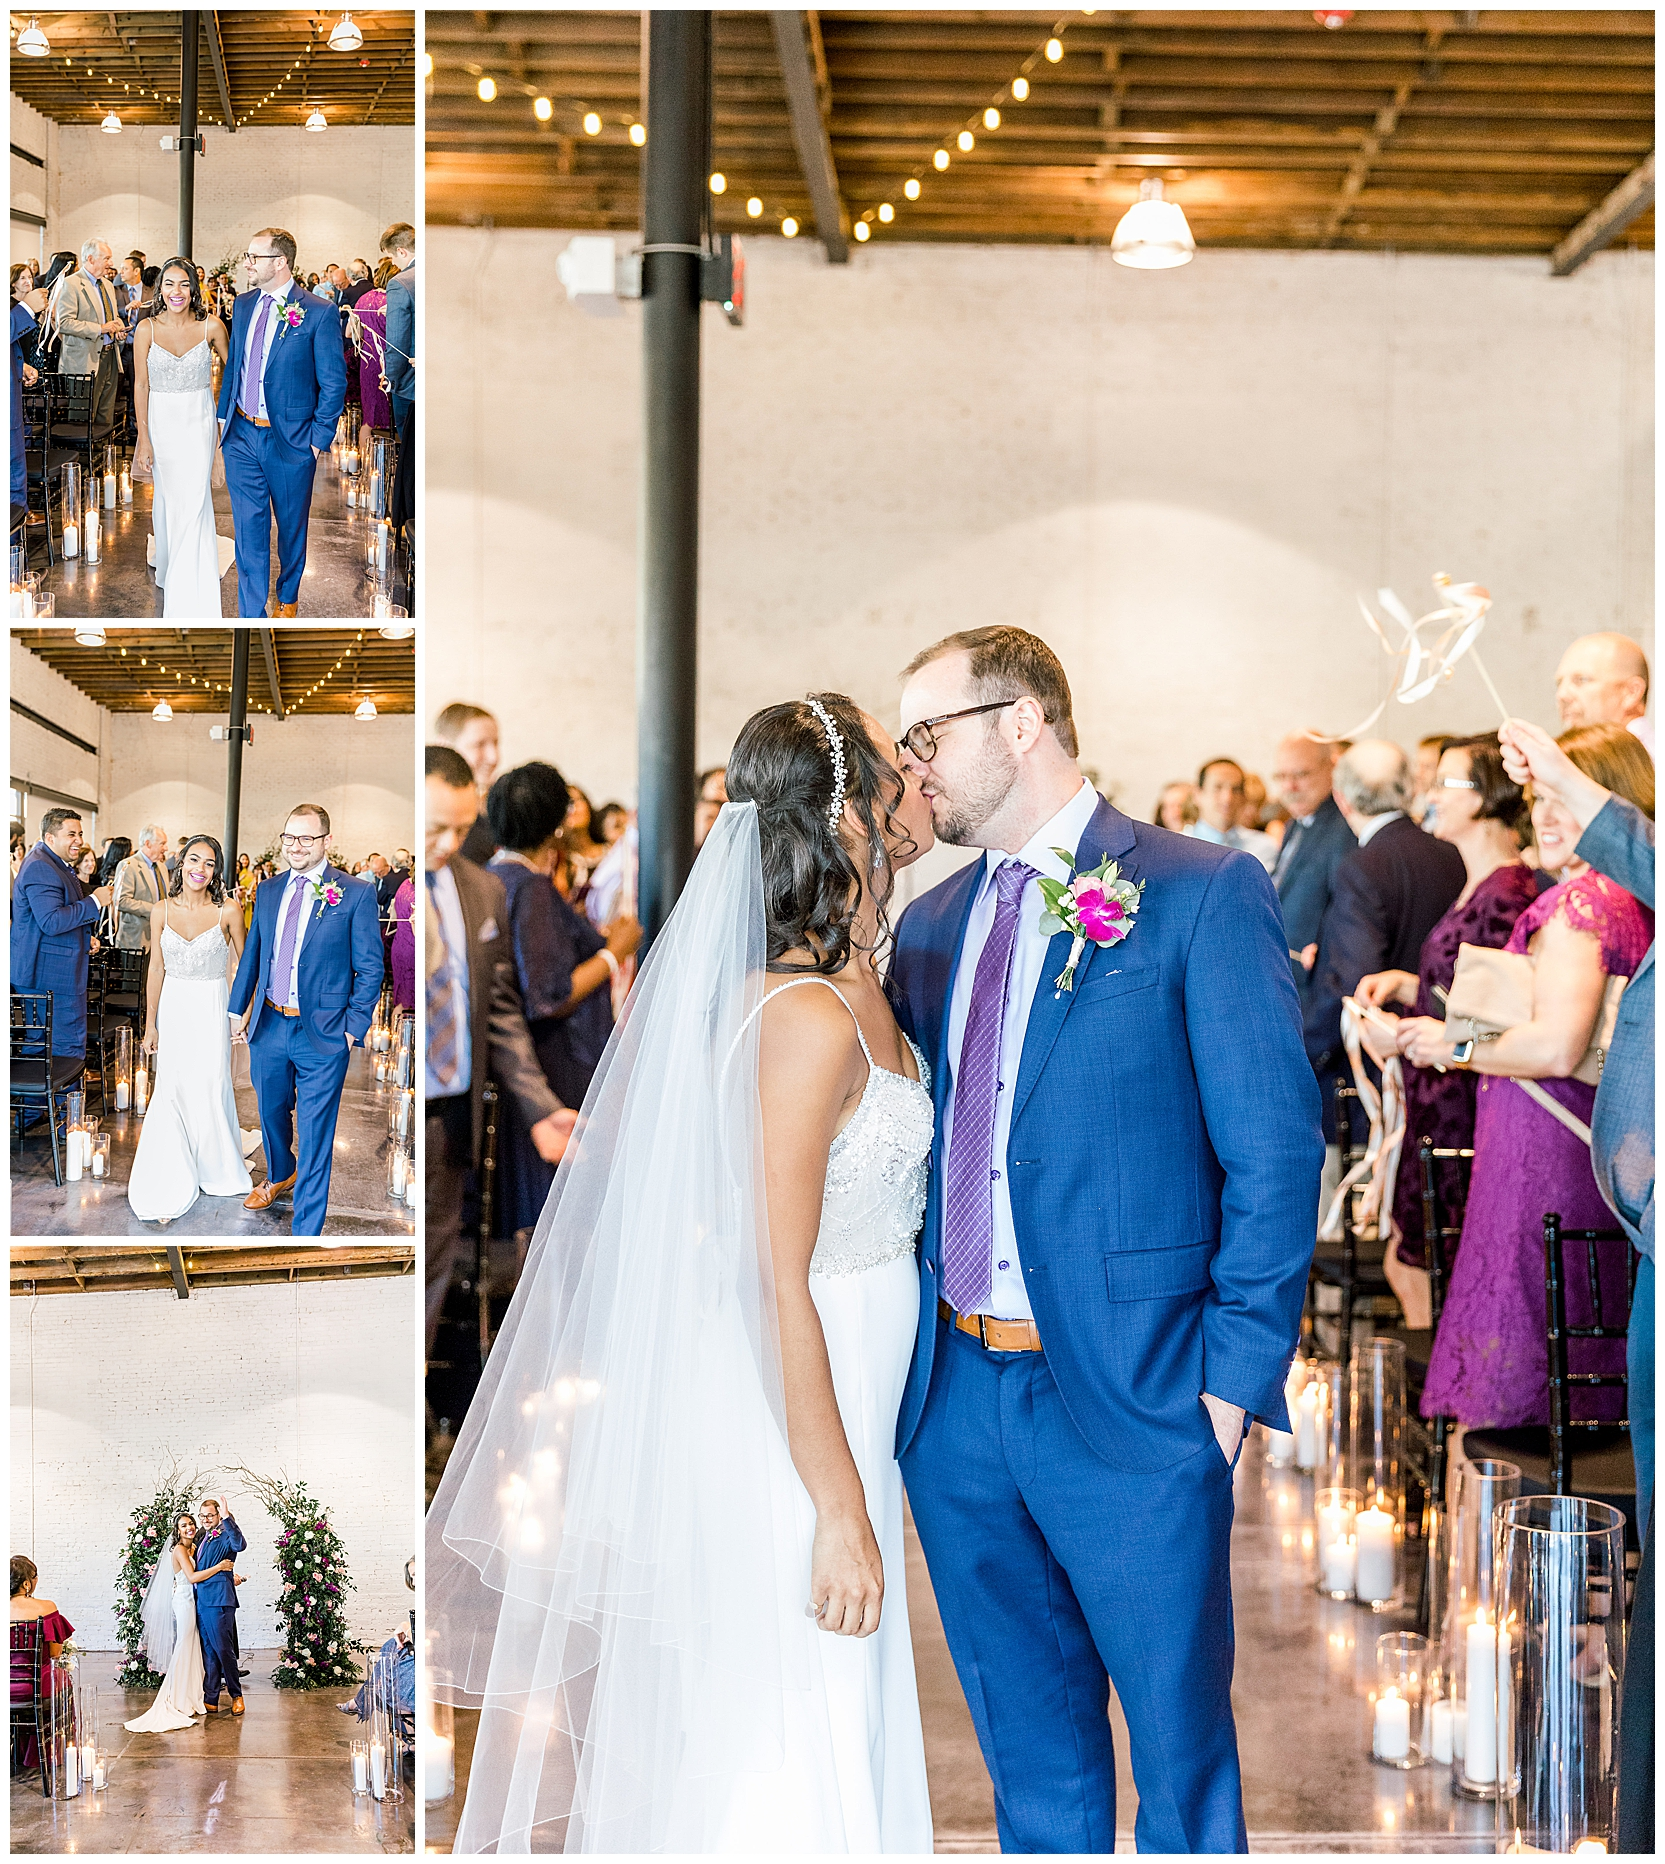 jessicafredericks_lakeland_tampa_wedding_purple_crazy hour_0051.jpg